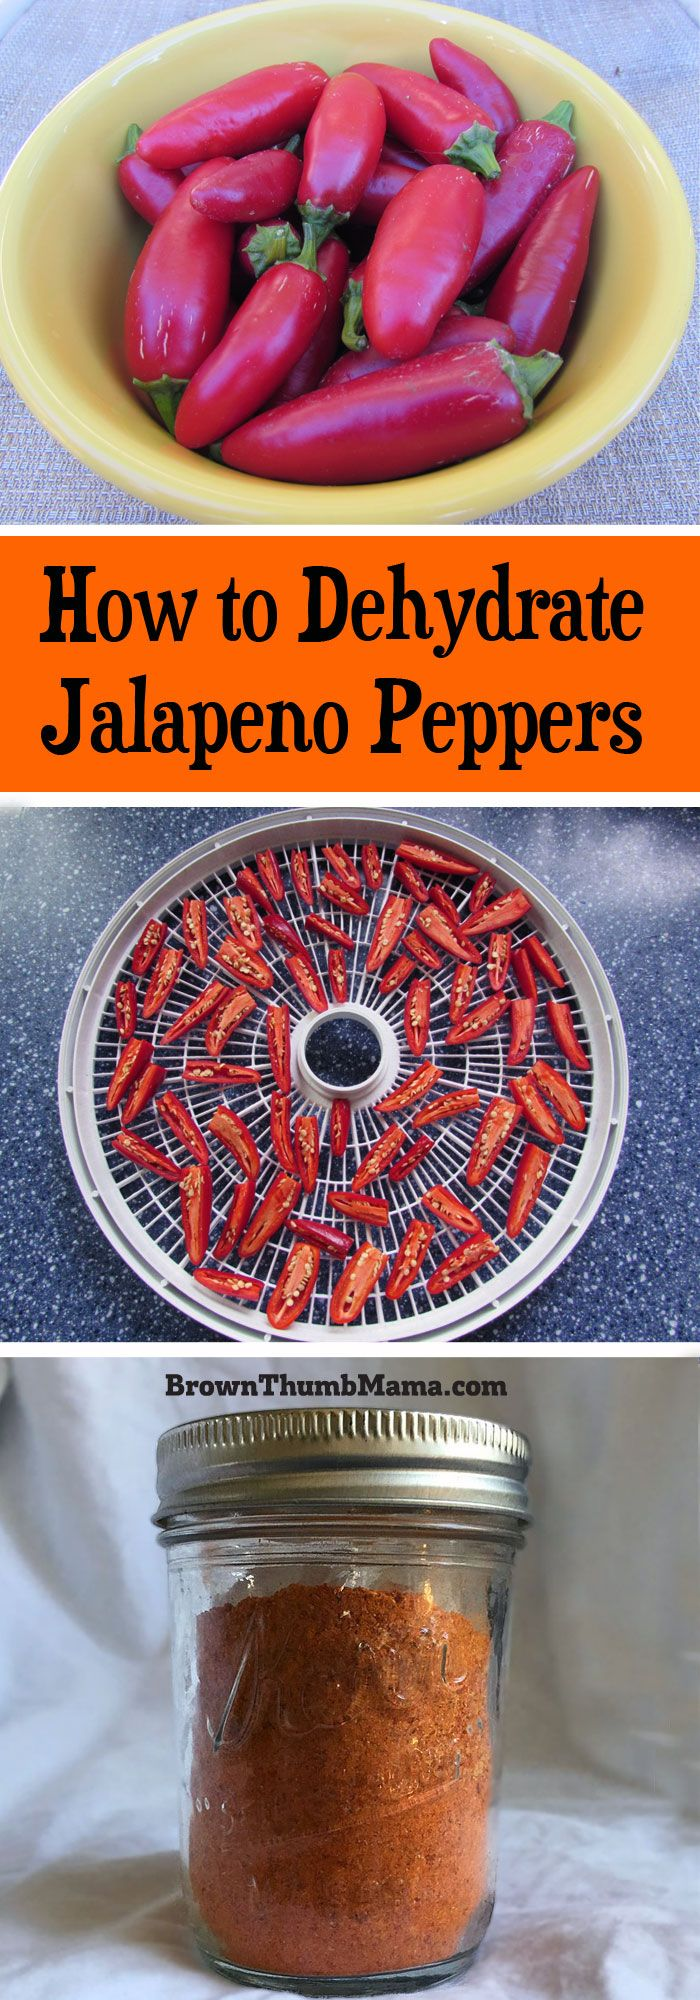 Too many jalapenos? No such thing! It's easy to dehydrate jalapeno peppers and use them to spice up taco seasoning mix, chili, refried beans, and more.